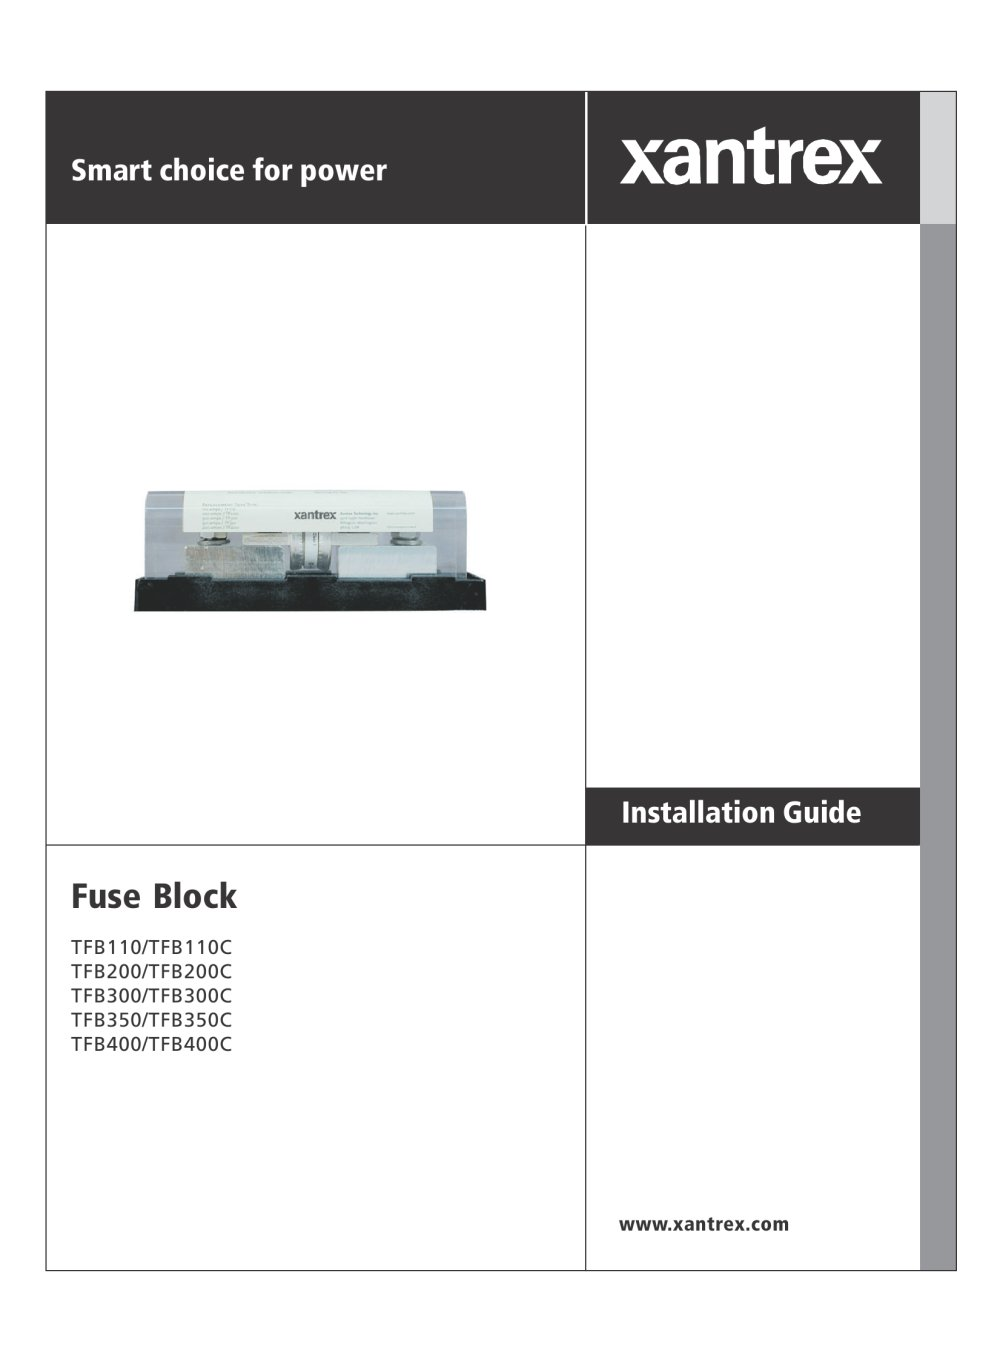 Battery Fuse Holder Xantrex Pdf Catalogues Documentation Freedom 458 Inverter Wiring Diagram 1 20 Pages